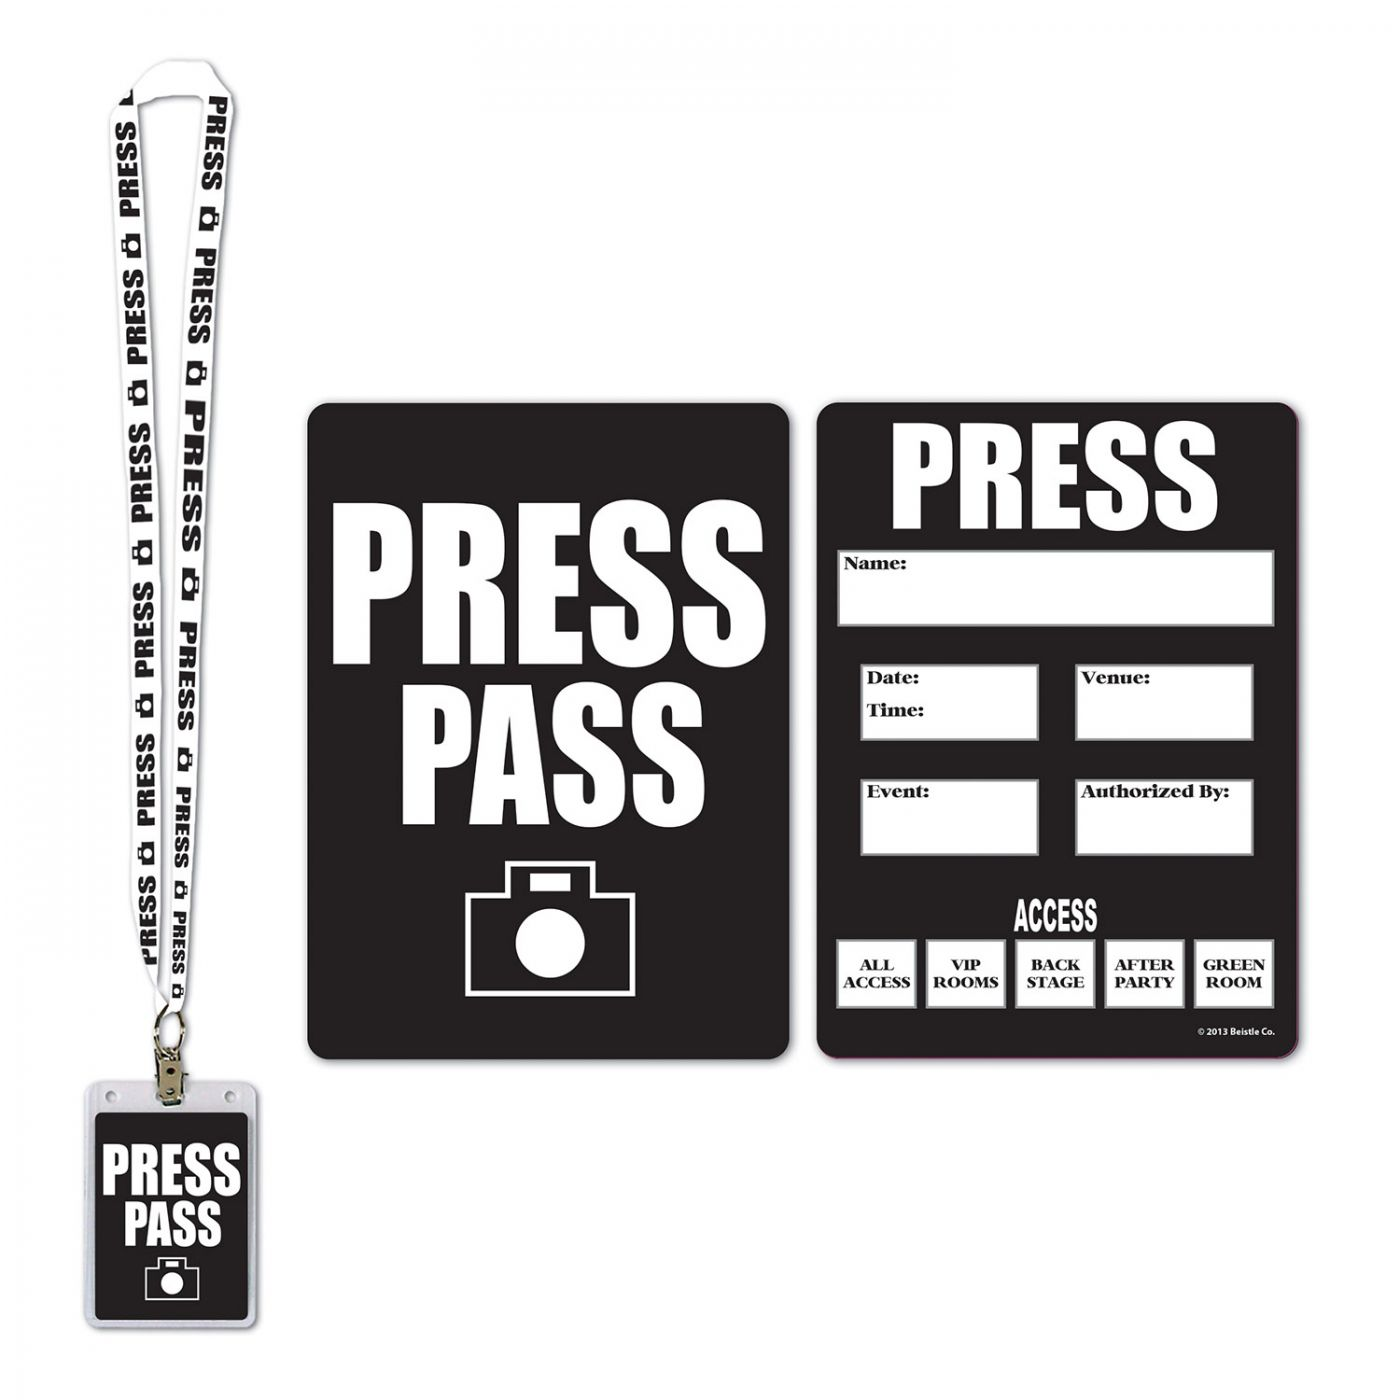 Press Party Pass image